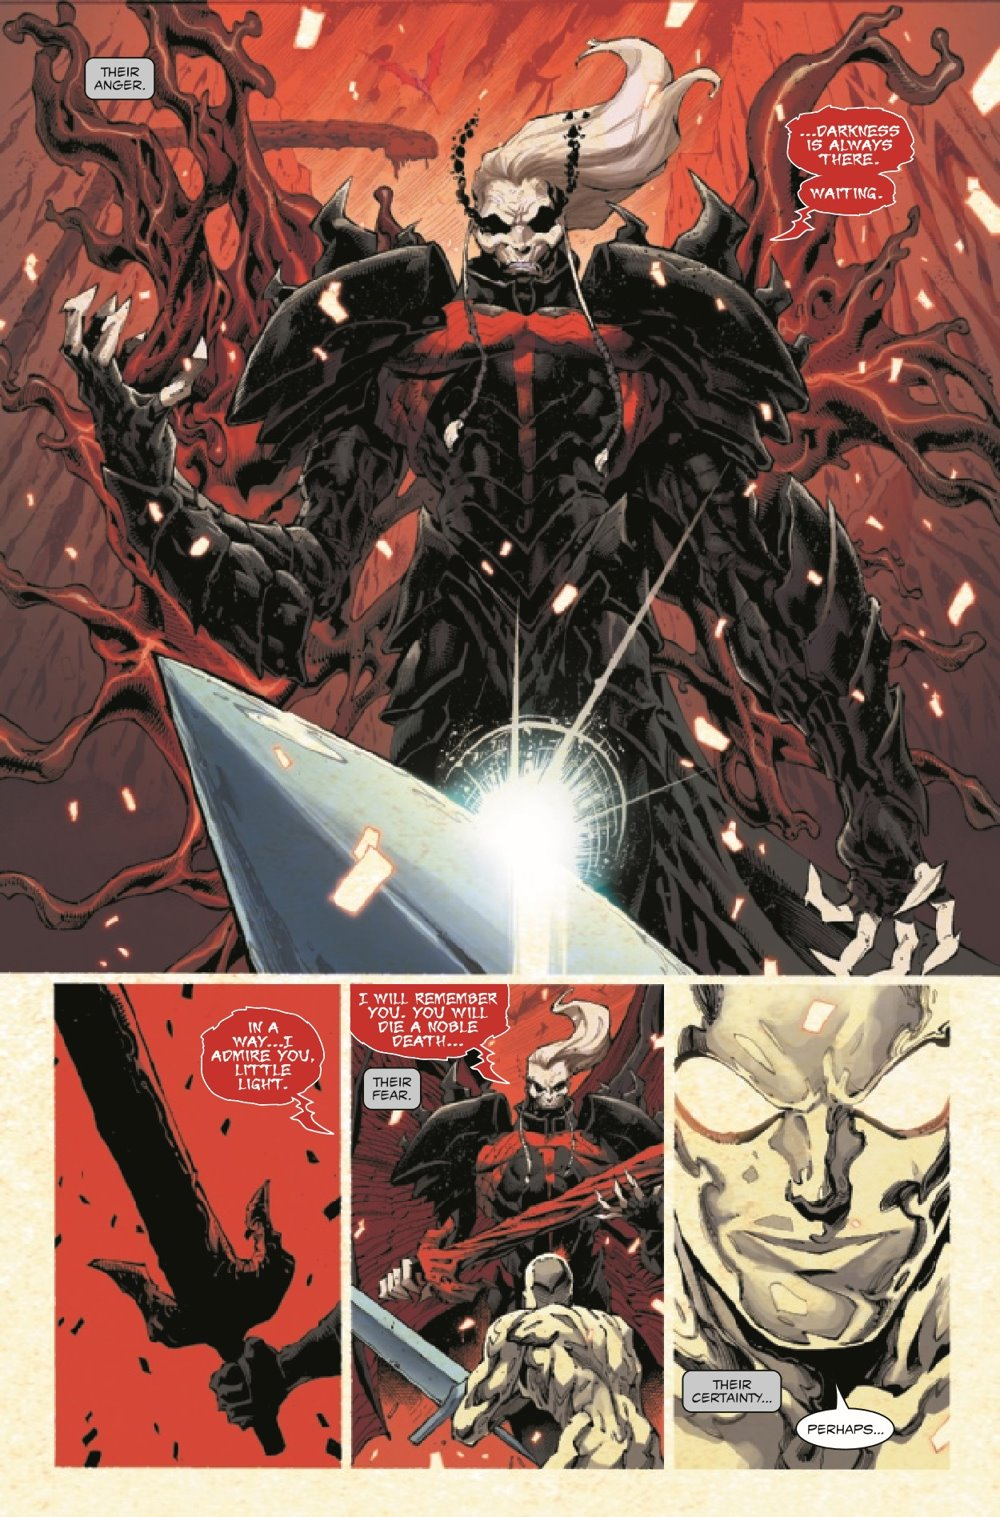 KINGINBLACK2020005_Preview-4 ComicList Previews: KING IN BLACK #5 (OF 5)